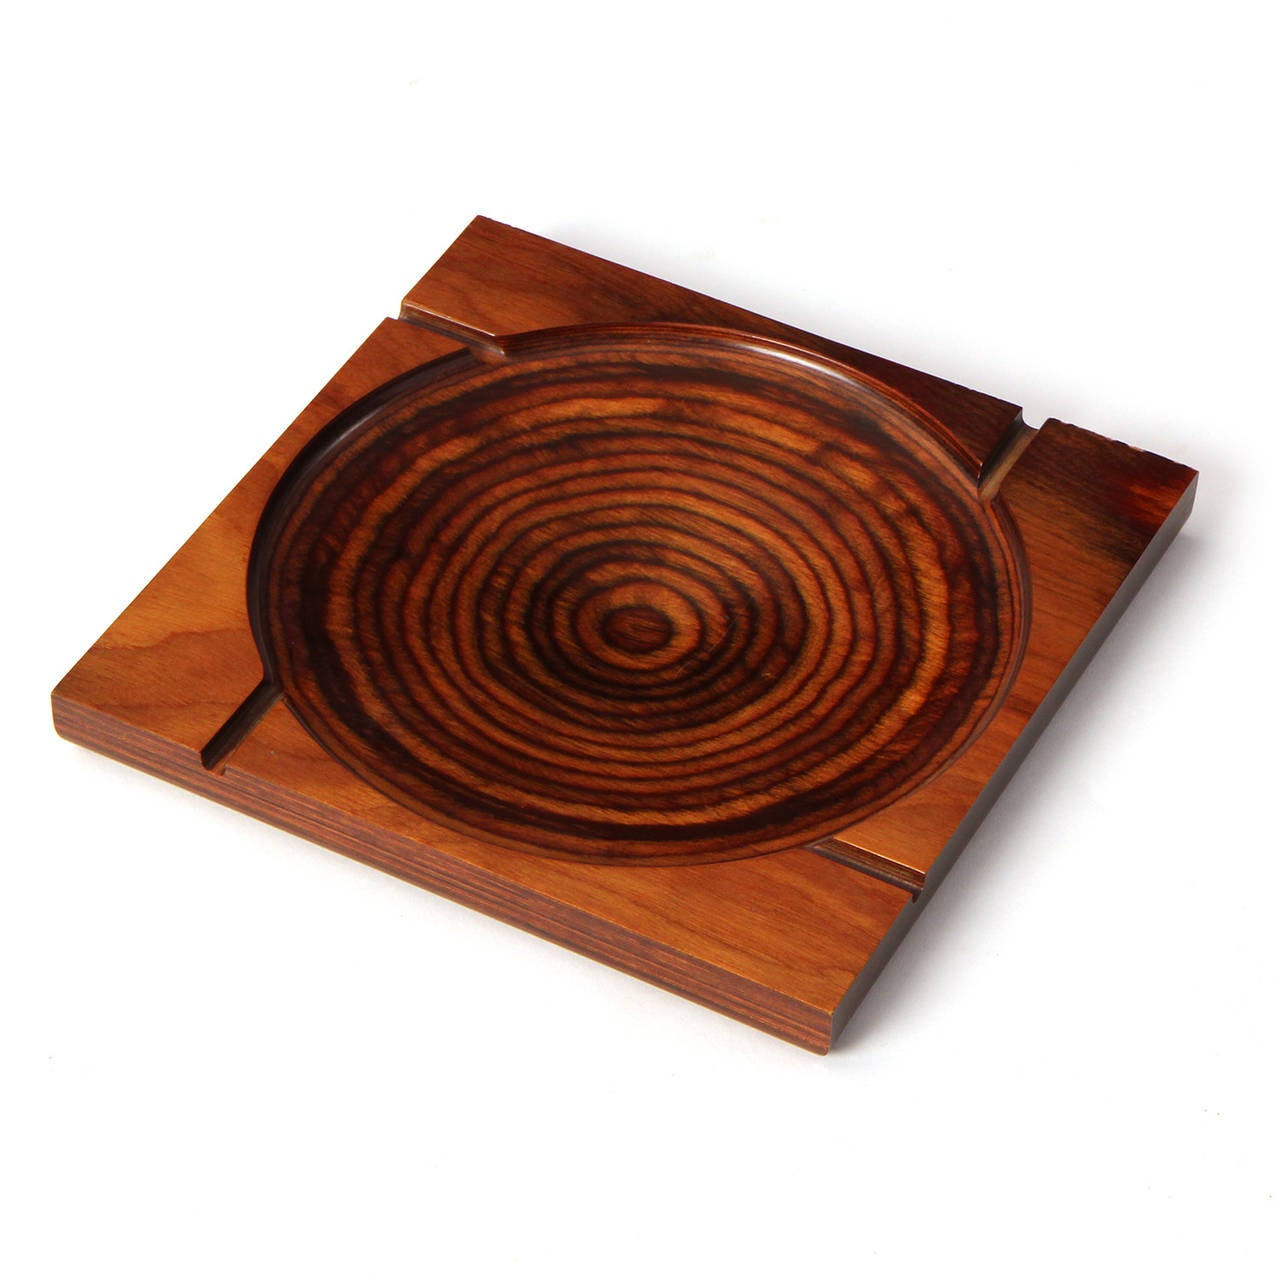 American Modernist Ashtray by Shur Wood For Sale